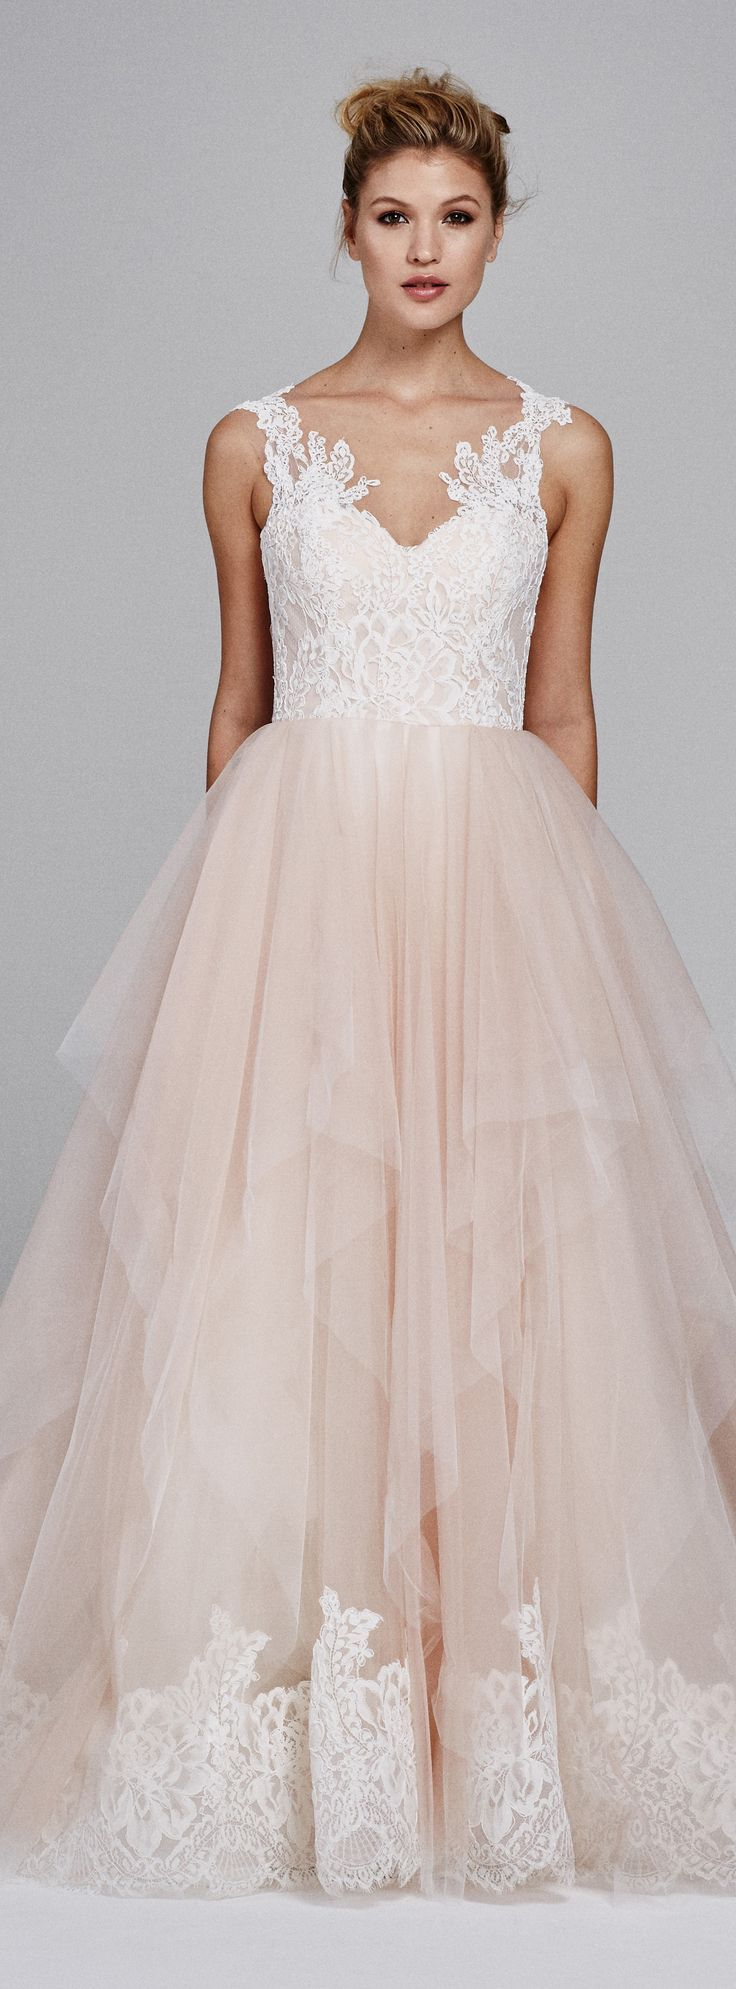 1000 ideas about ivory lace wedding dress on pinterest for Ivory wedding dress meaning